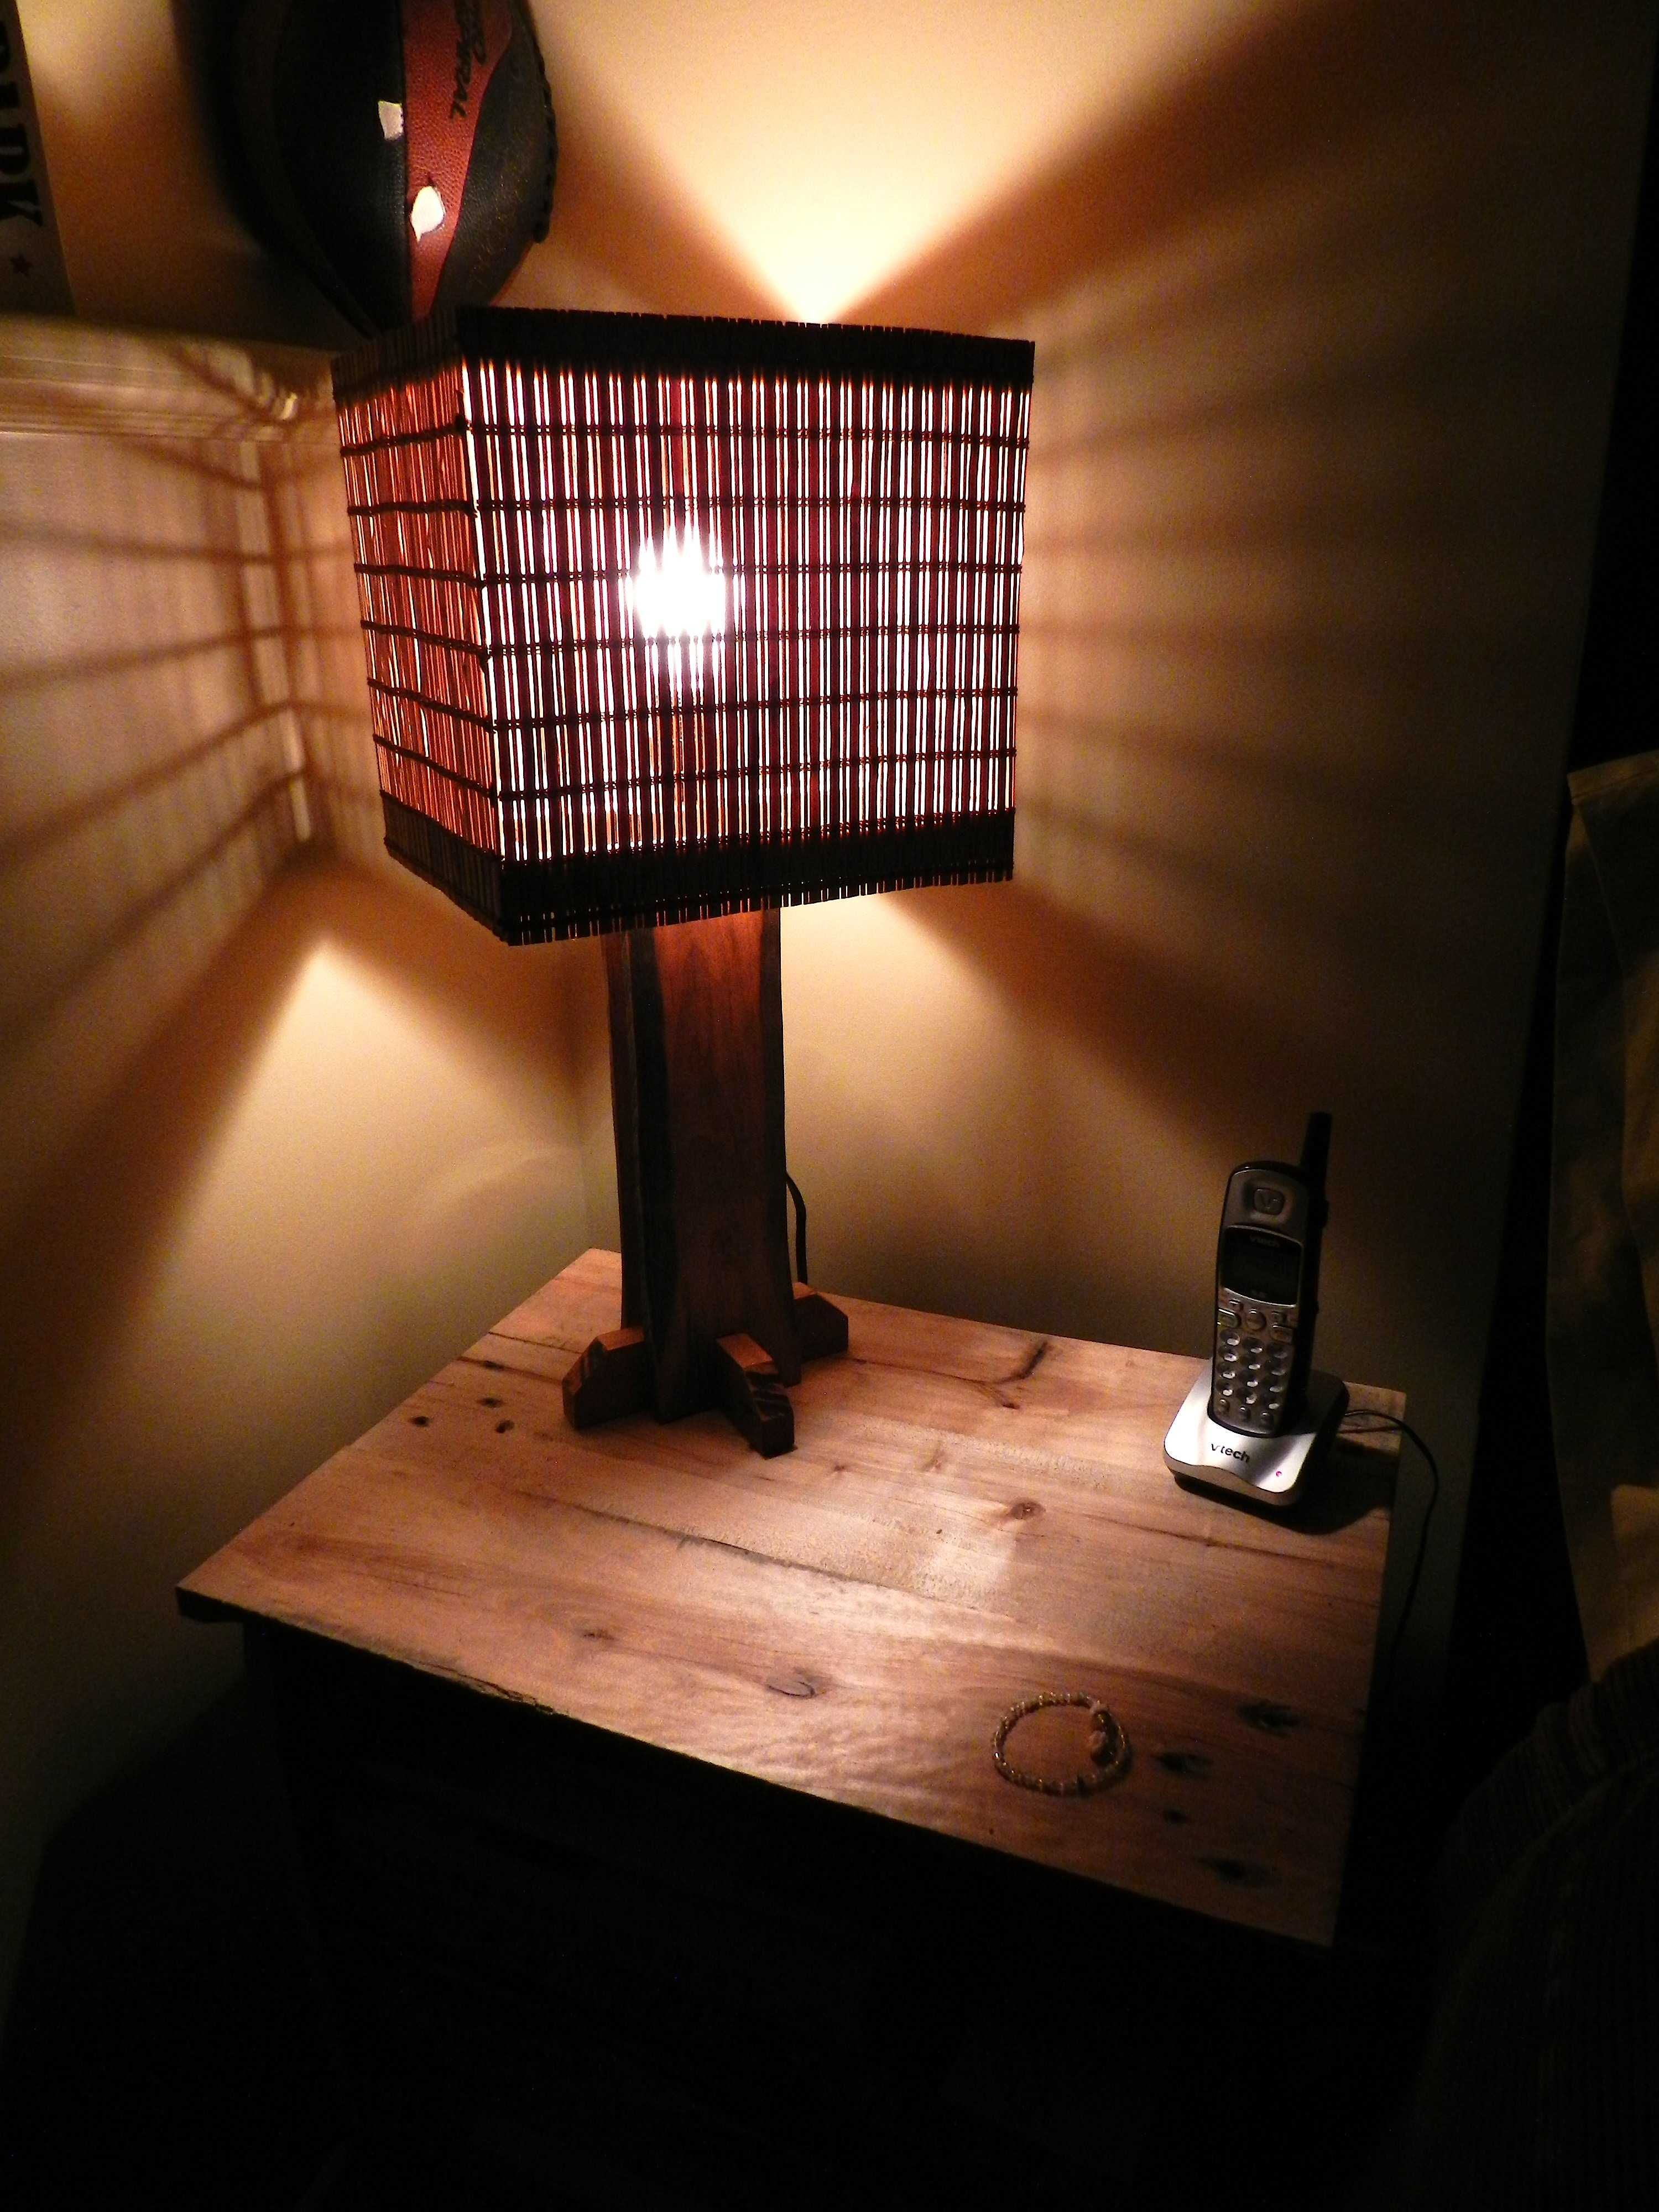 Lampe En Bois Recycle Lamp Made From Recycled Pallet Wood Pallet Home Decor Pallet Light Recycled Lamp